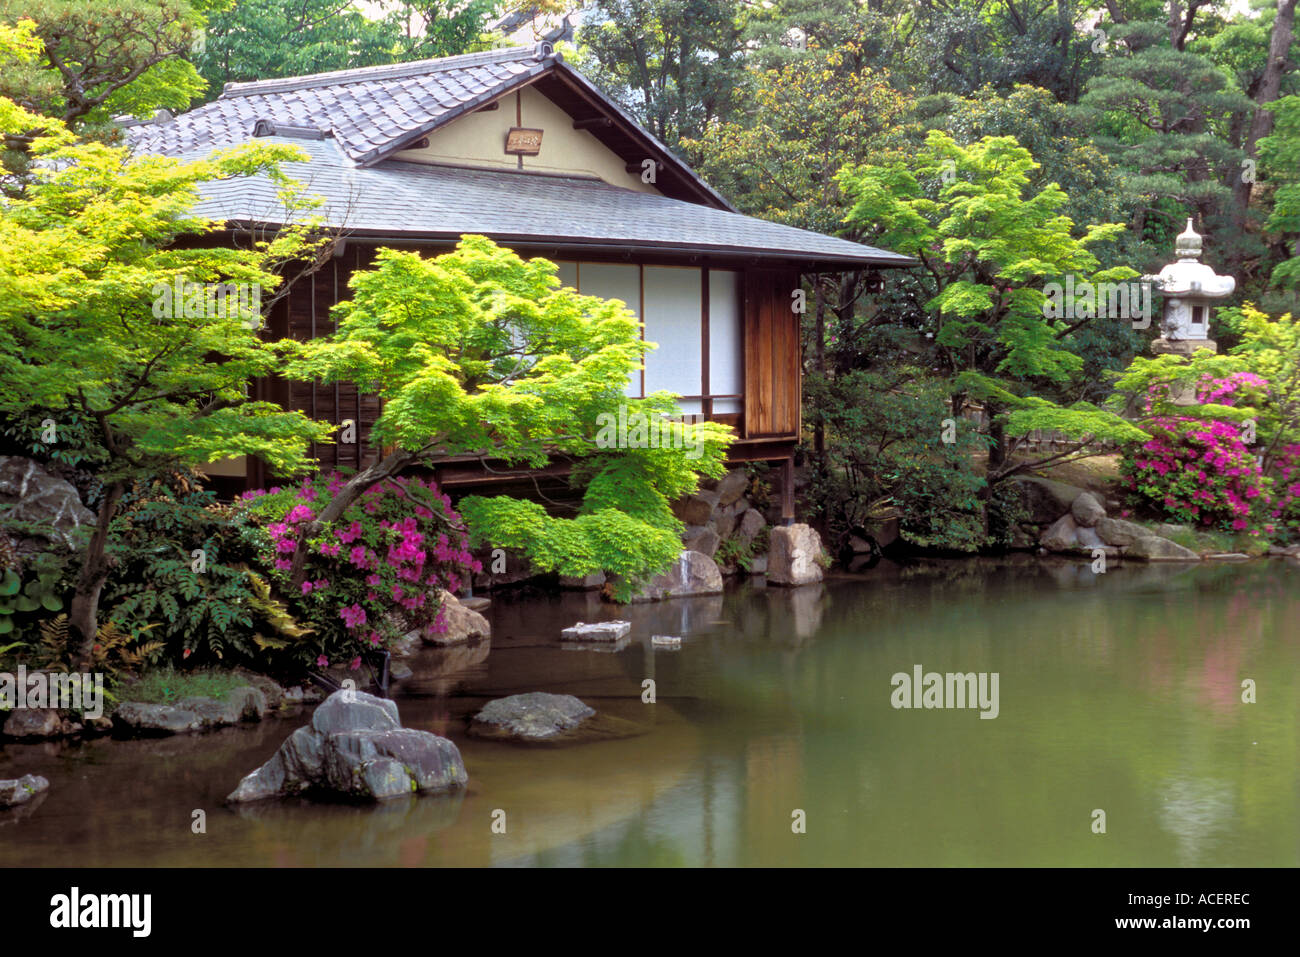 Tea house beside koi pond in spring setting at sorakuen for Koi pond setup